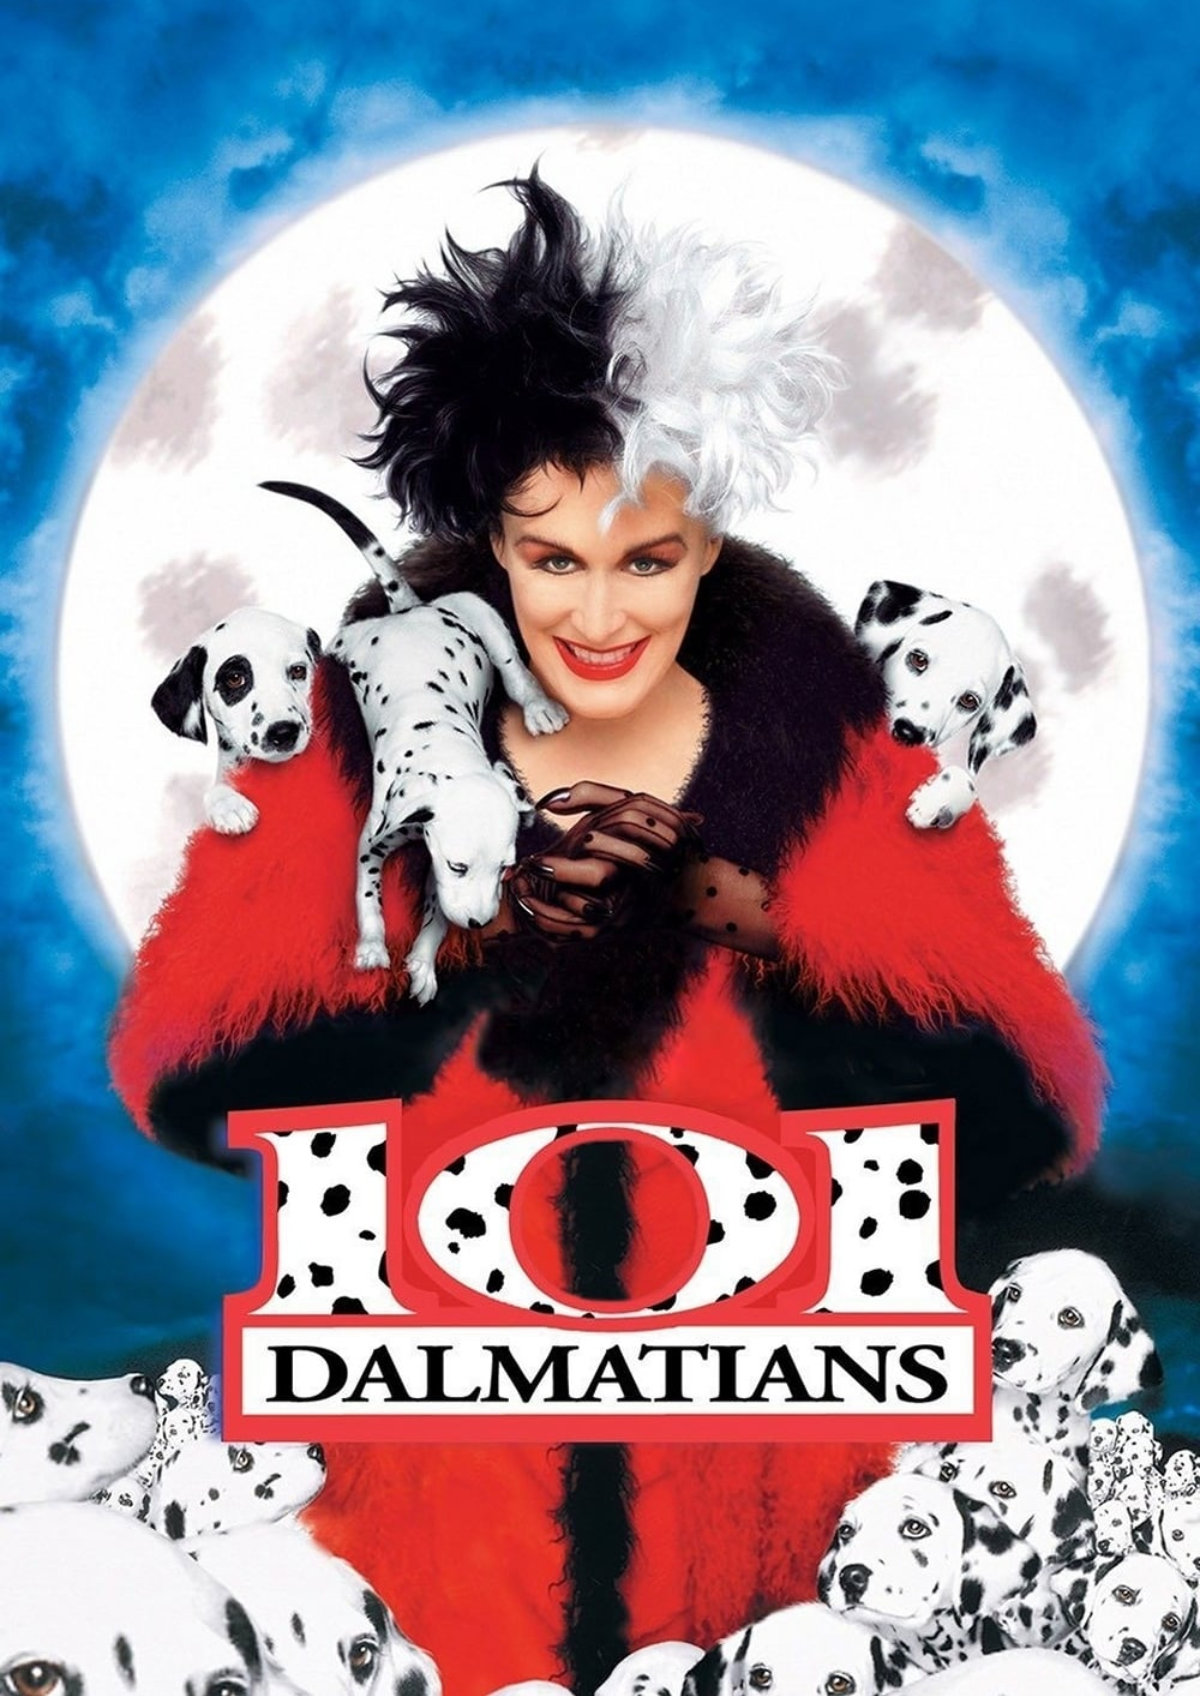 '101 Dalmatians' movie poster